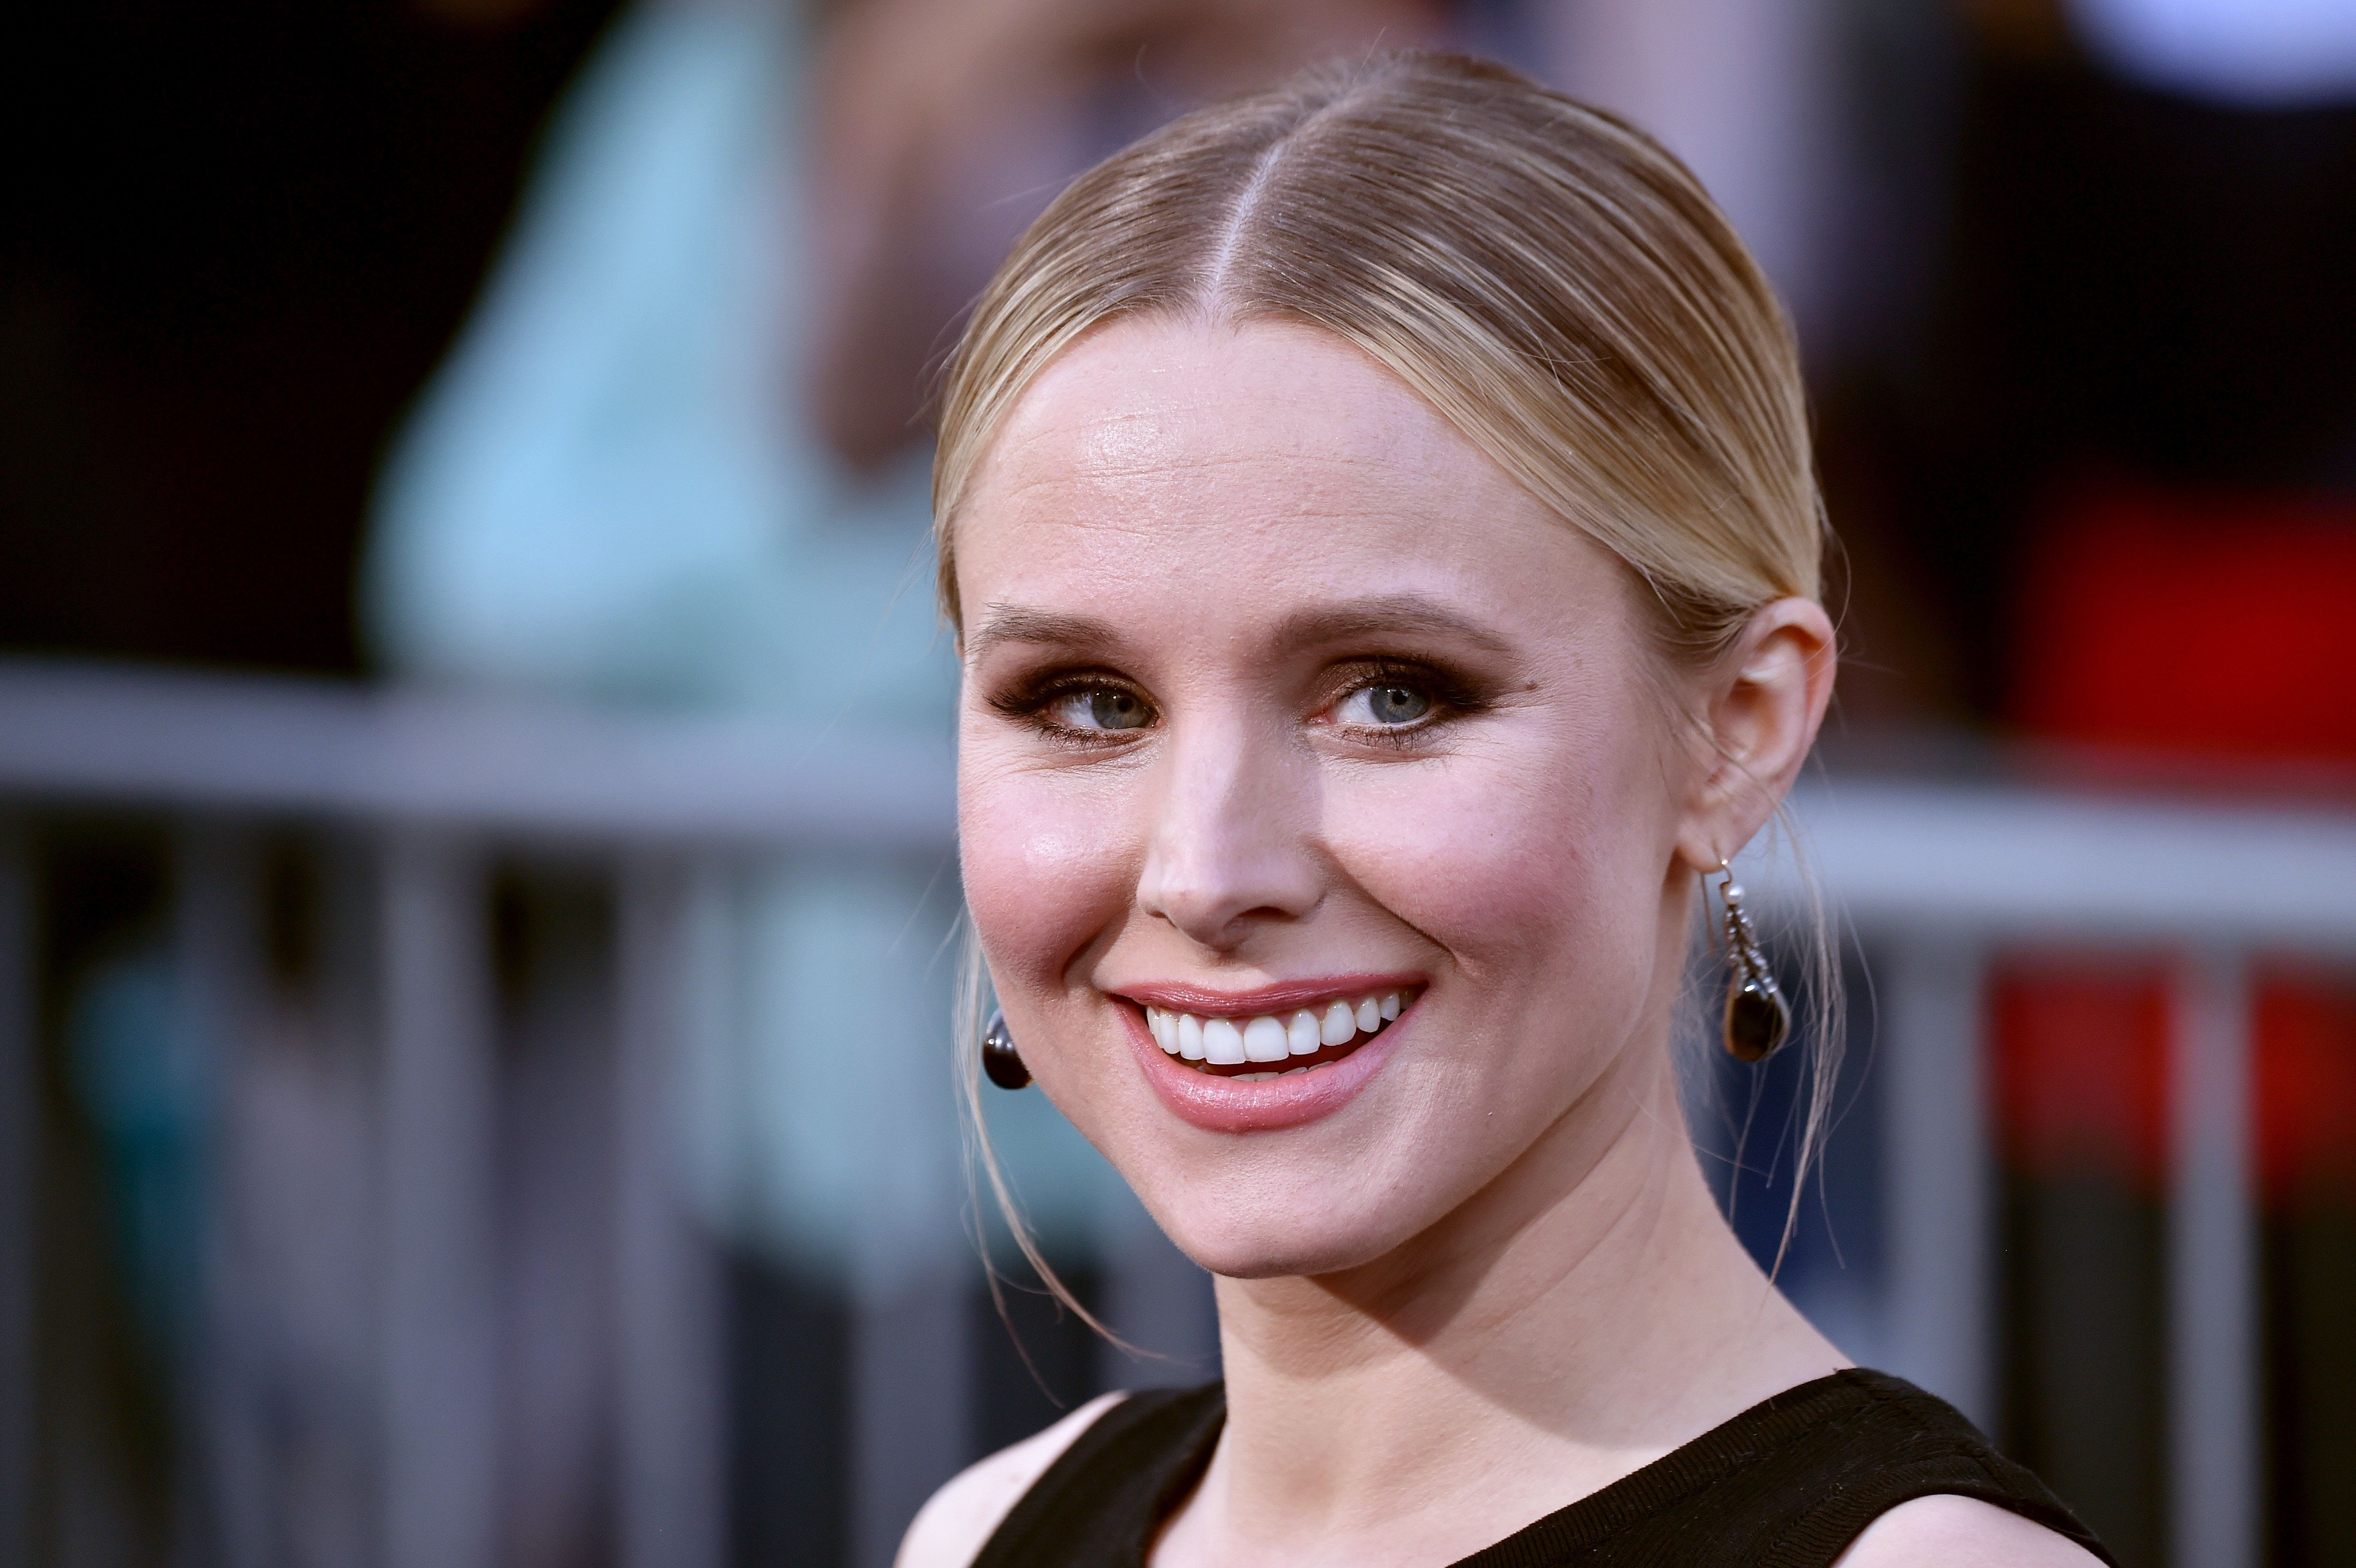 Kristen Bell encouraged moms who have felt shamed for their parenting choices to stand by their decisions.